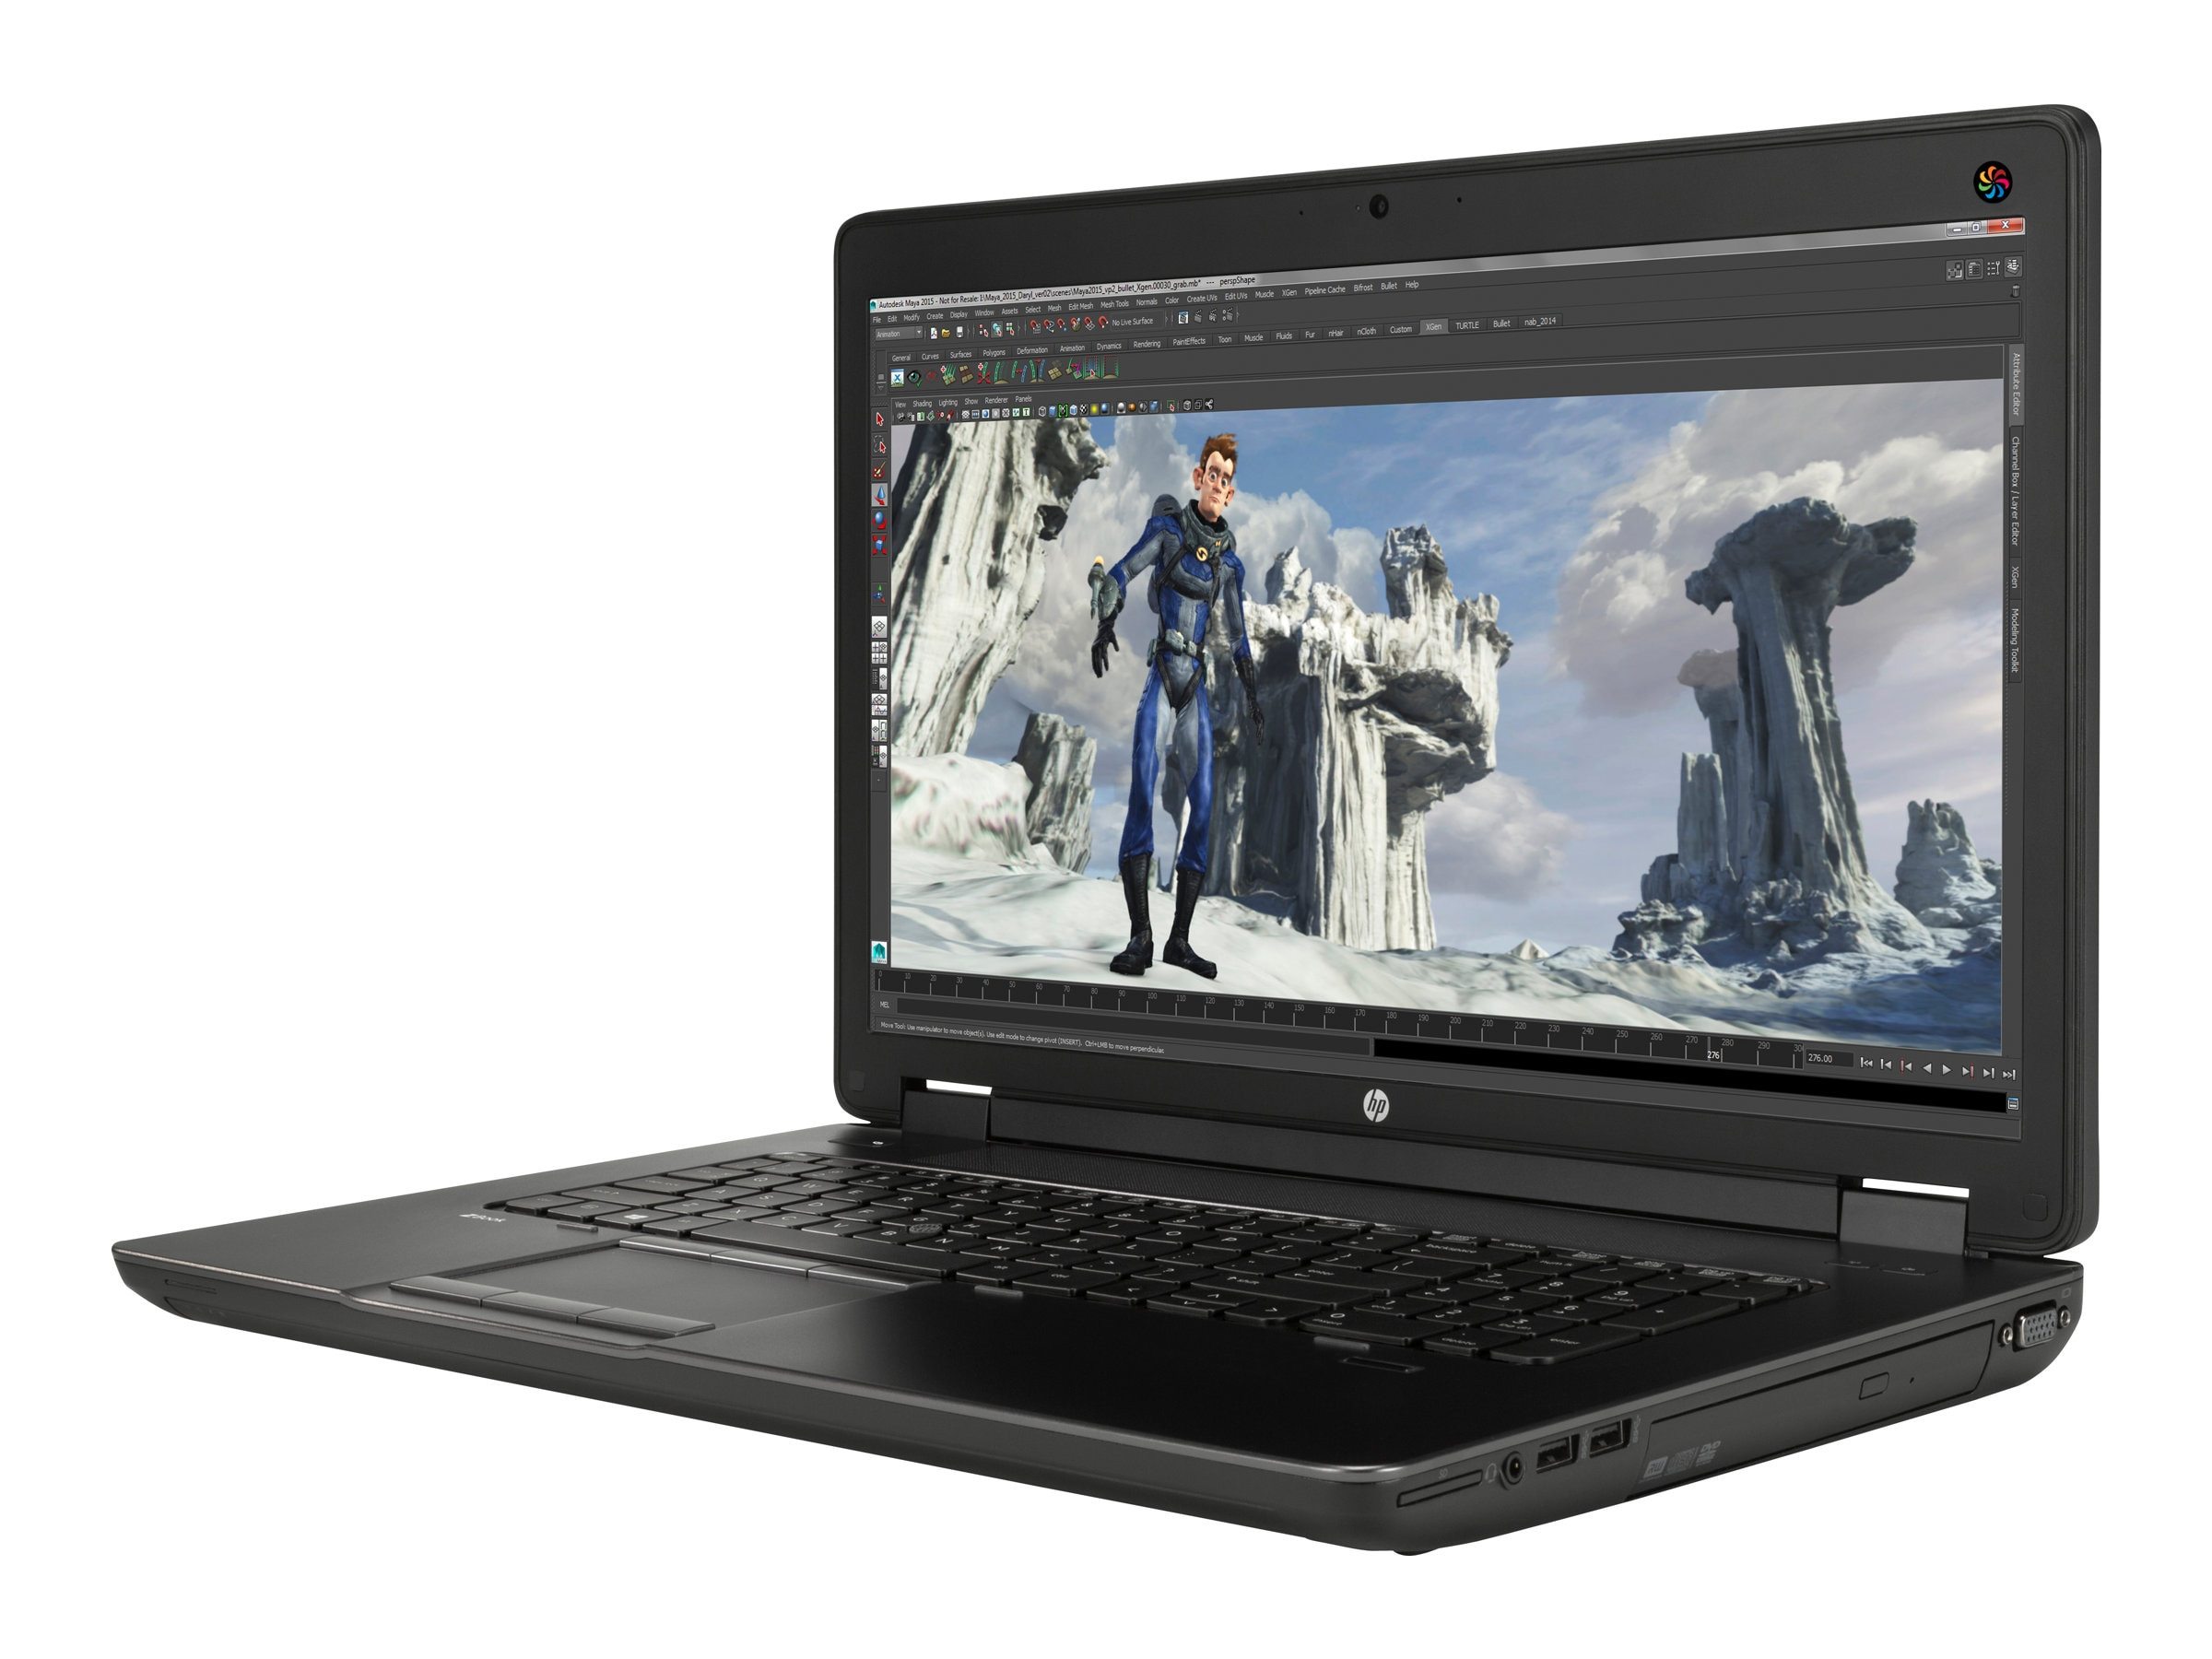 HP ZBook 17 Core i7-4940MX 3.1GHz 32GB 512GB SSD DVD+RW BT 17.3 W7P, N5N31US#ABA, 21896854, Workstations - Mobile